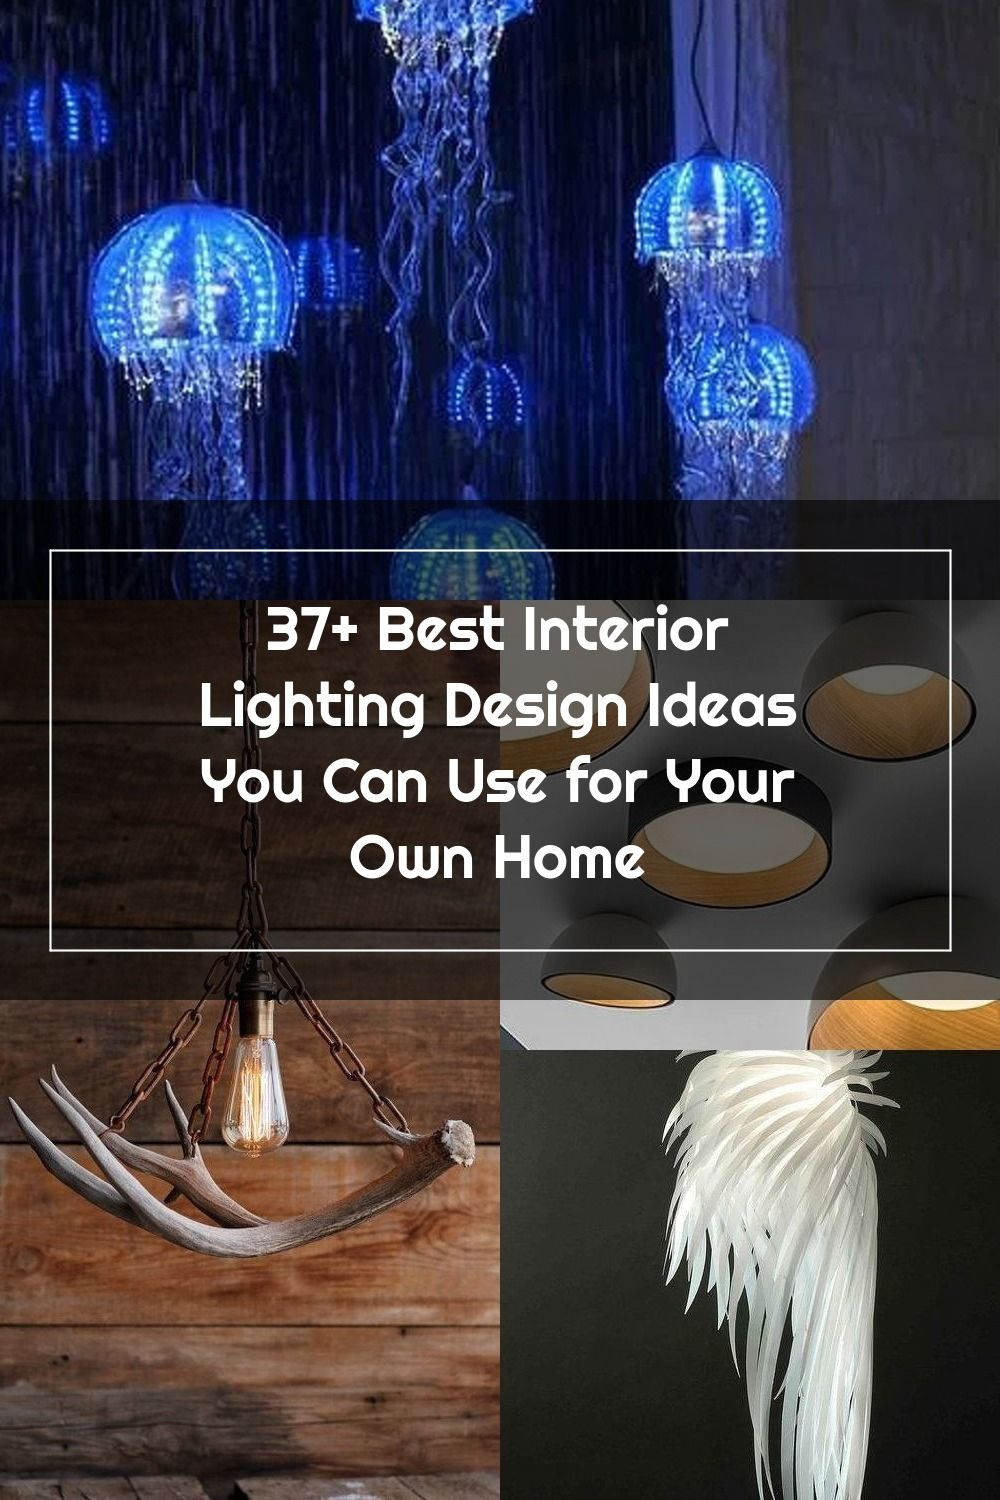 Interesting and unique INTERIOR LIGHTING DESIGN ideas can always stand out and you can bring in some cool options if you're creative. #interior #lighting #pendantlight